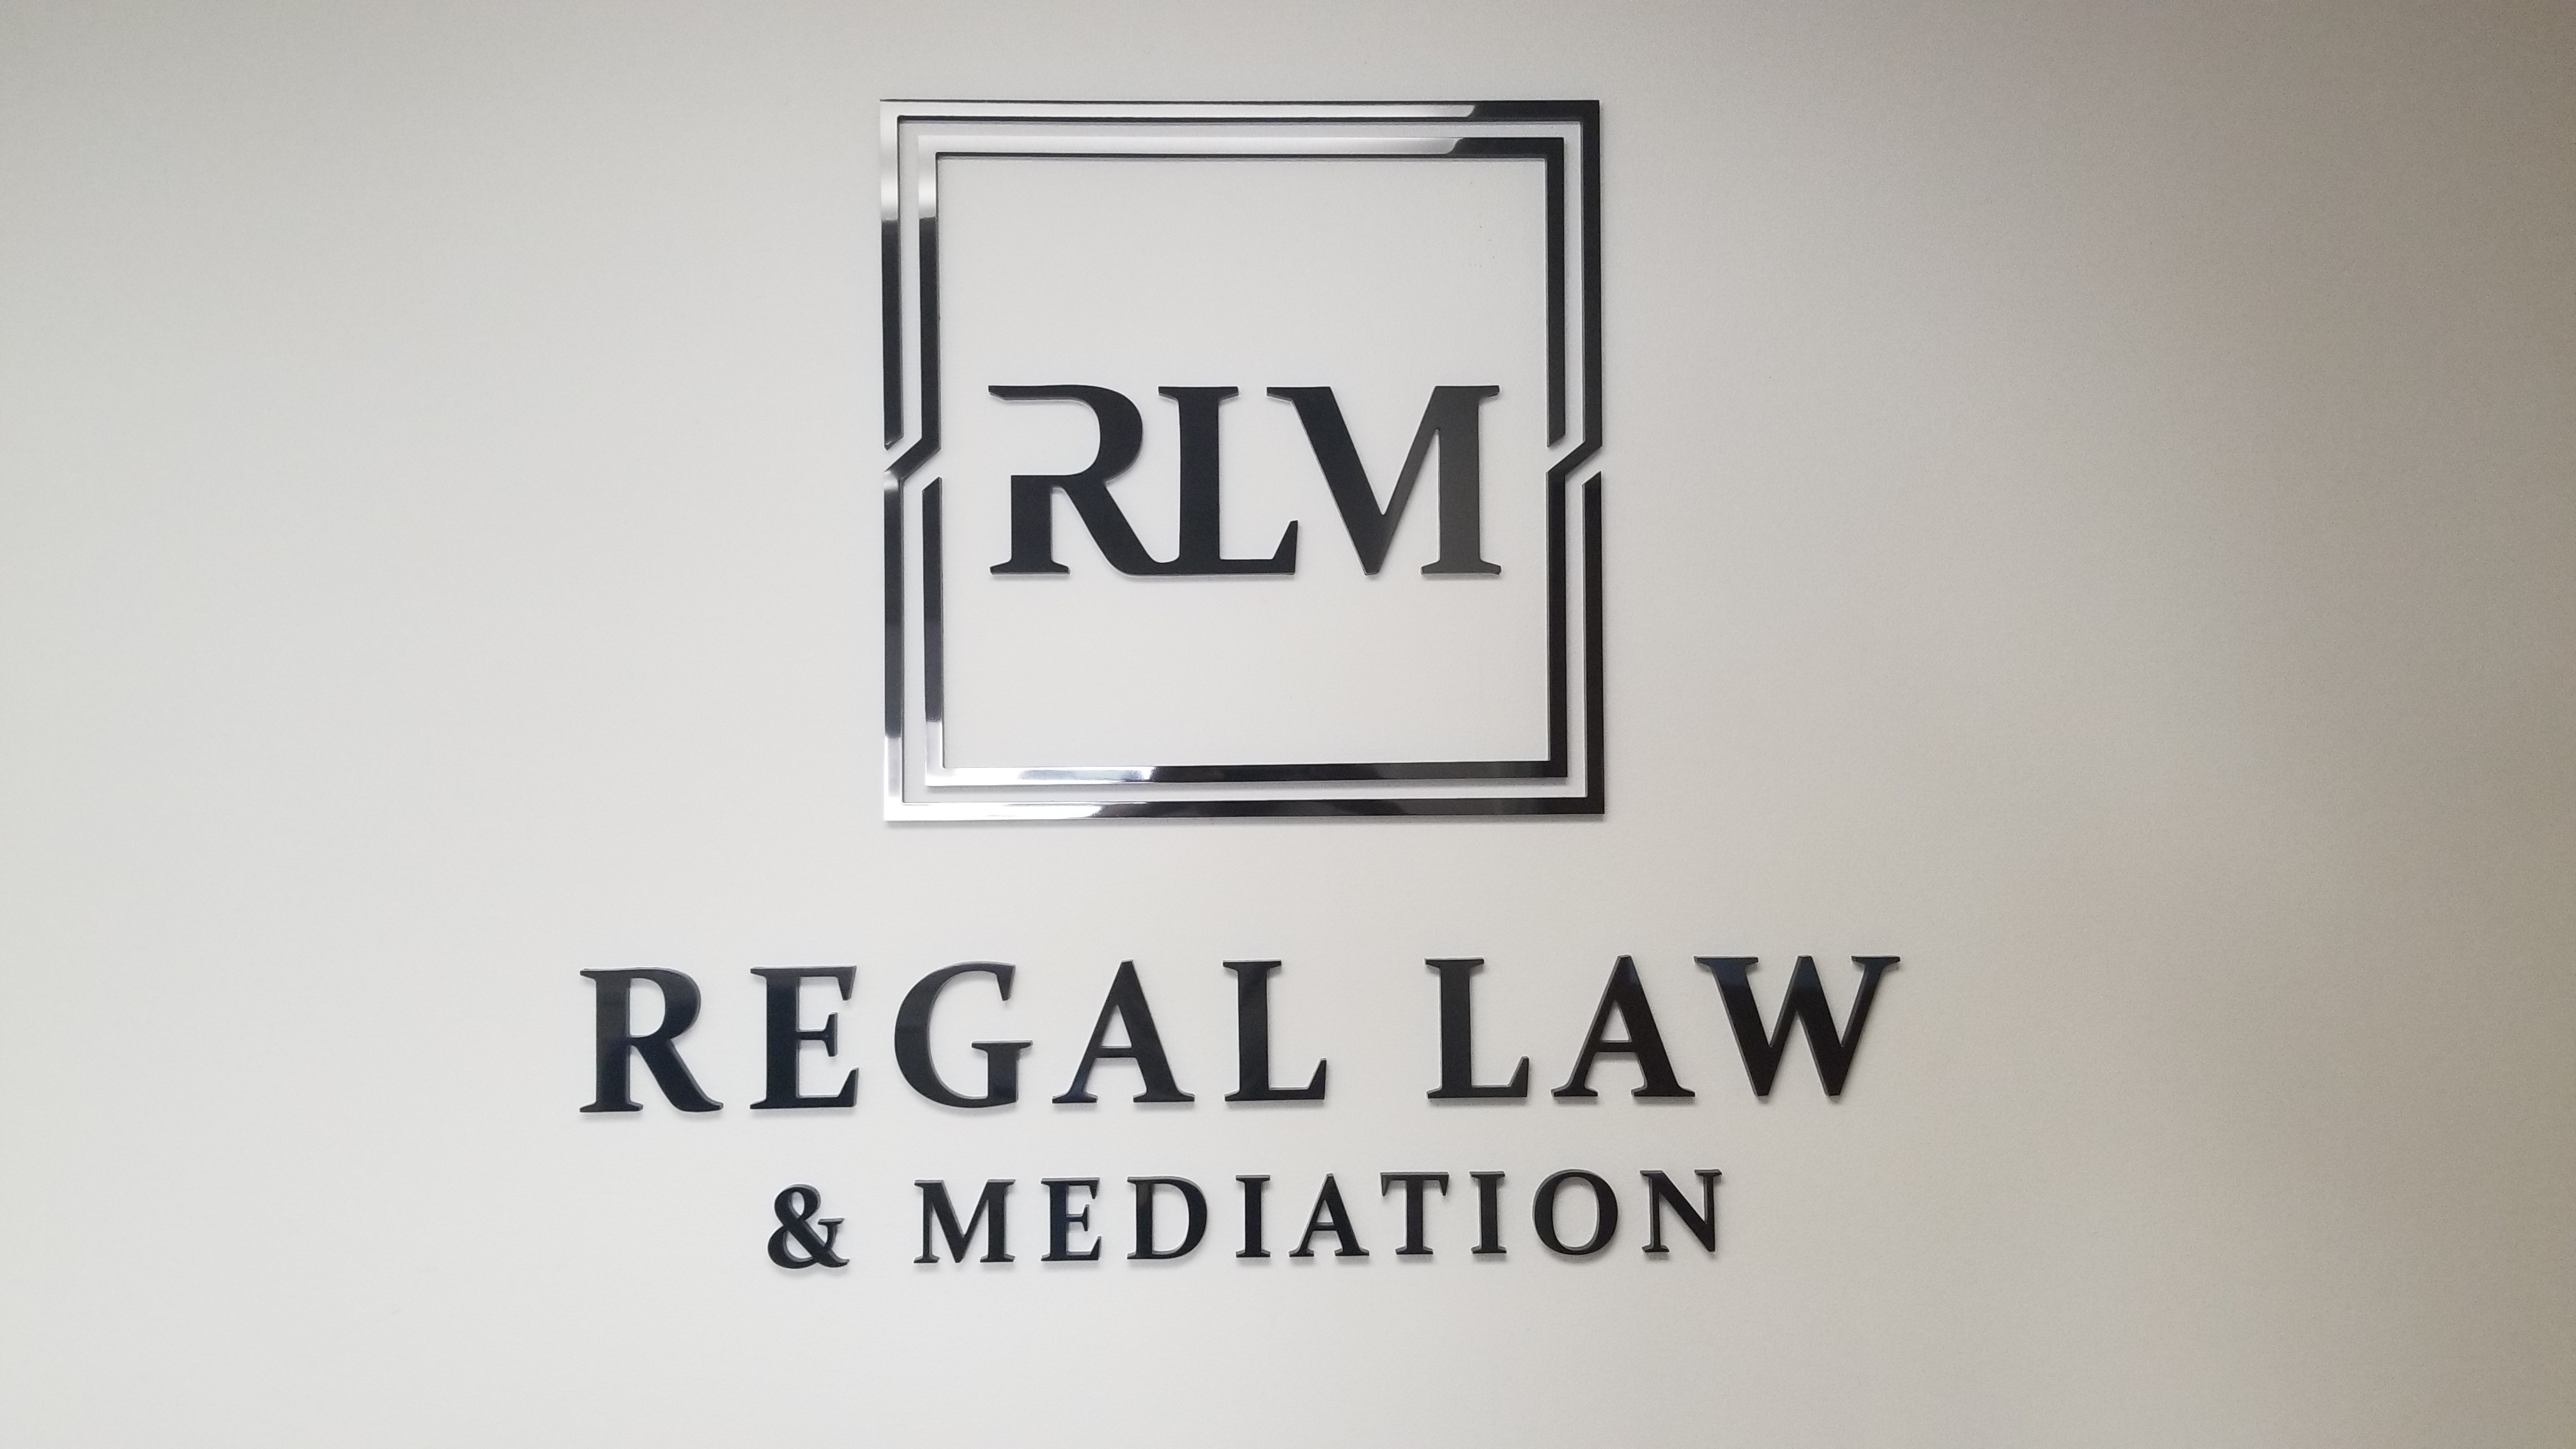 This time the focus is on the laser-cut acrylic office lobby sign for Regal Law. Now the Torrance legal firm has a stunning centerpiece.